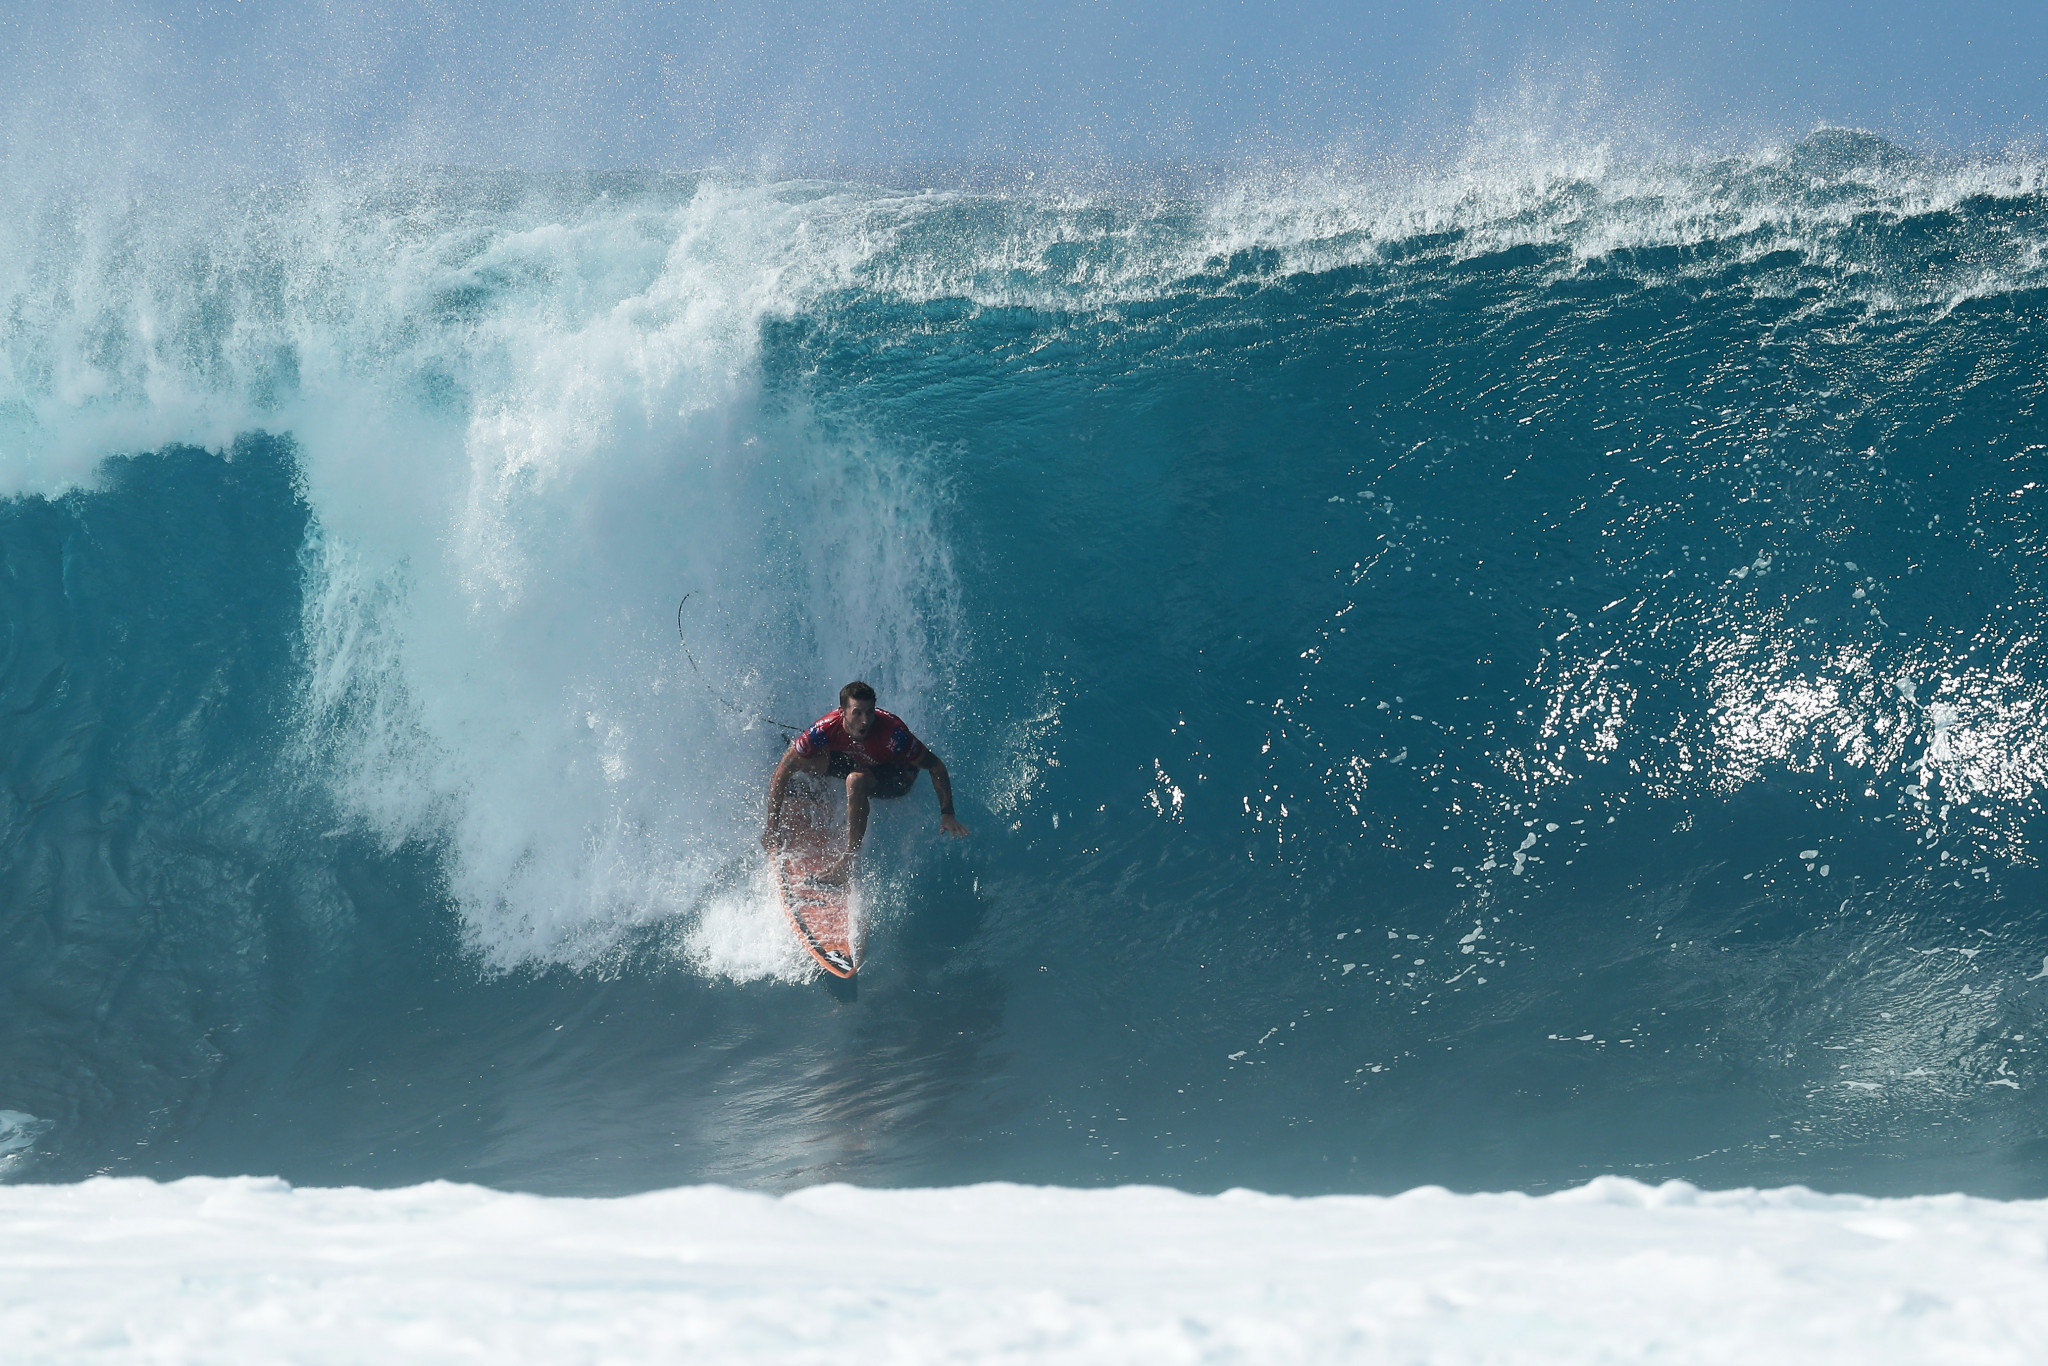 World Surf League confirm cancellation of season and plans for 2021